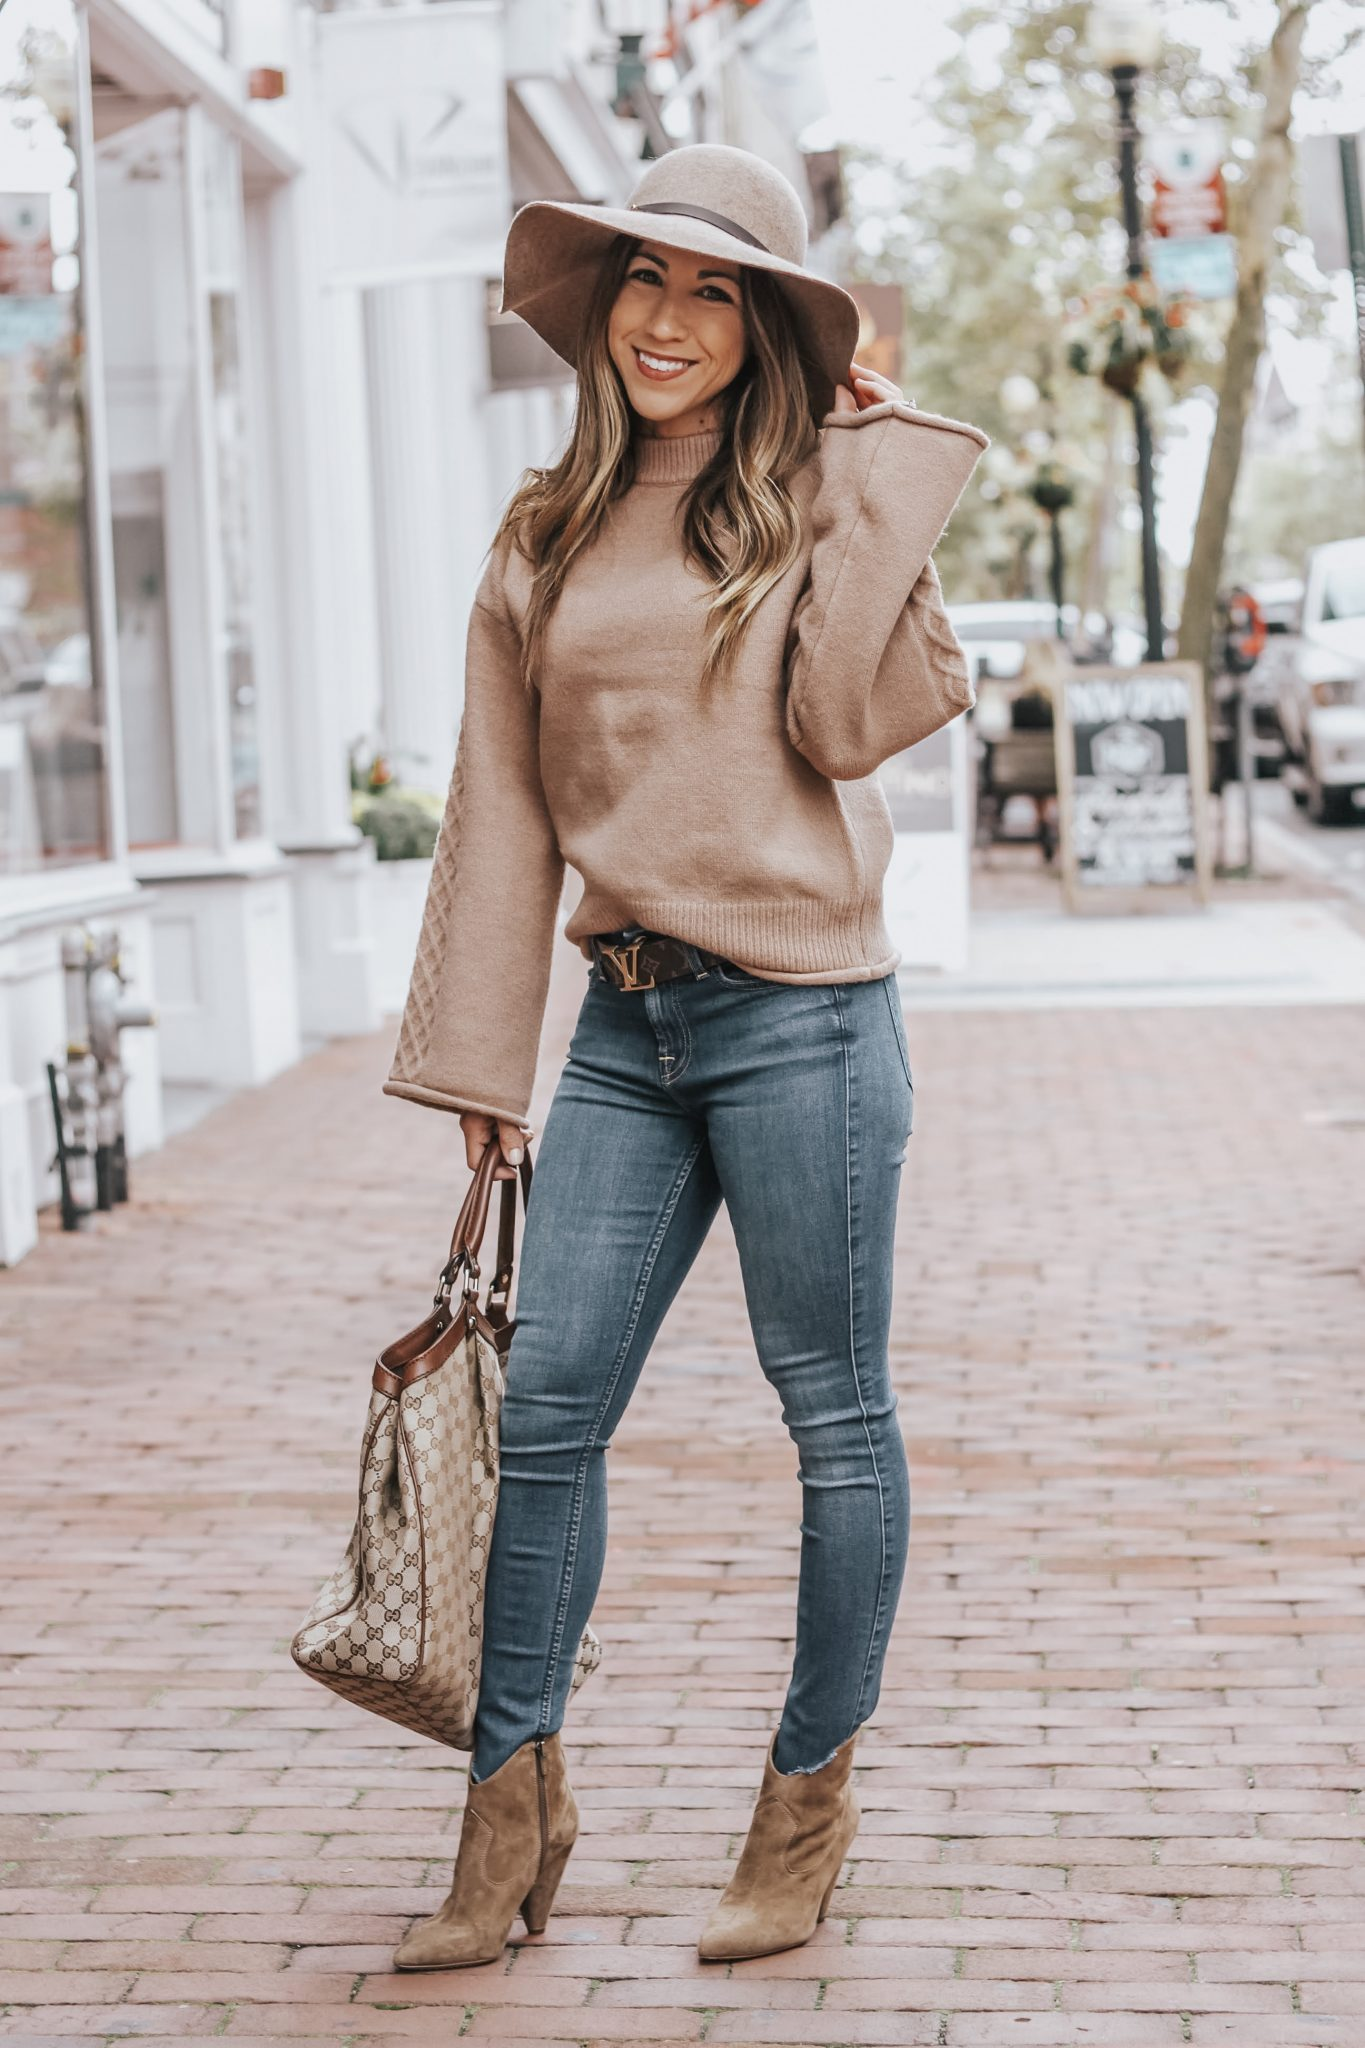 camel hues for fall